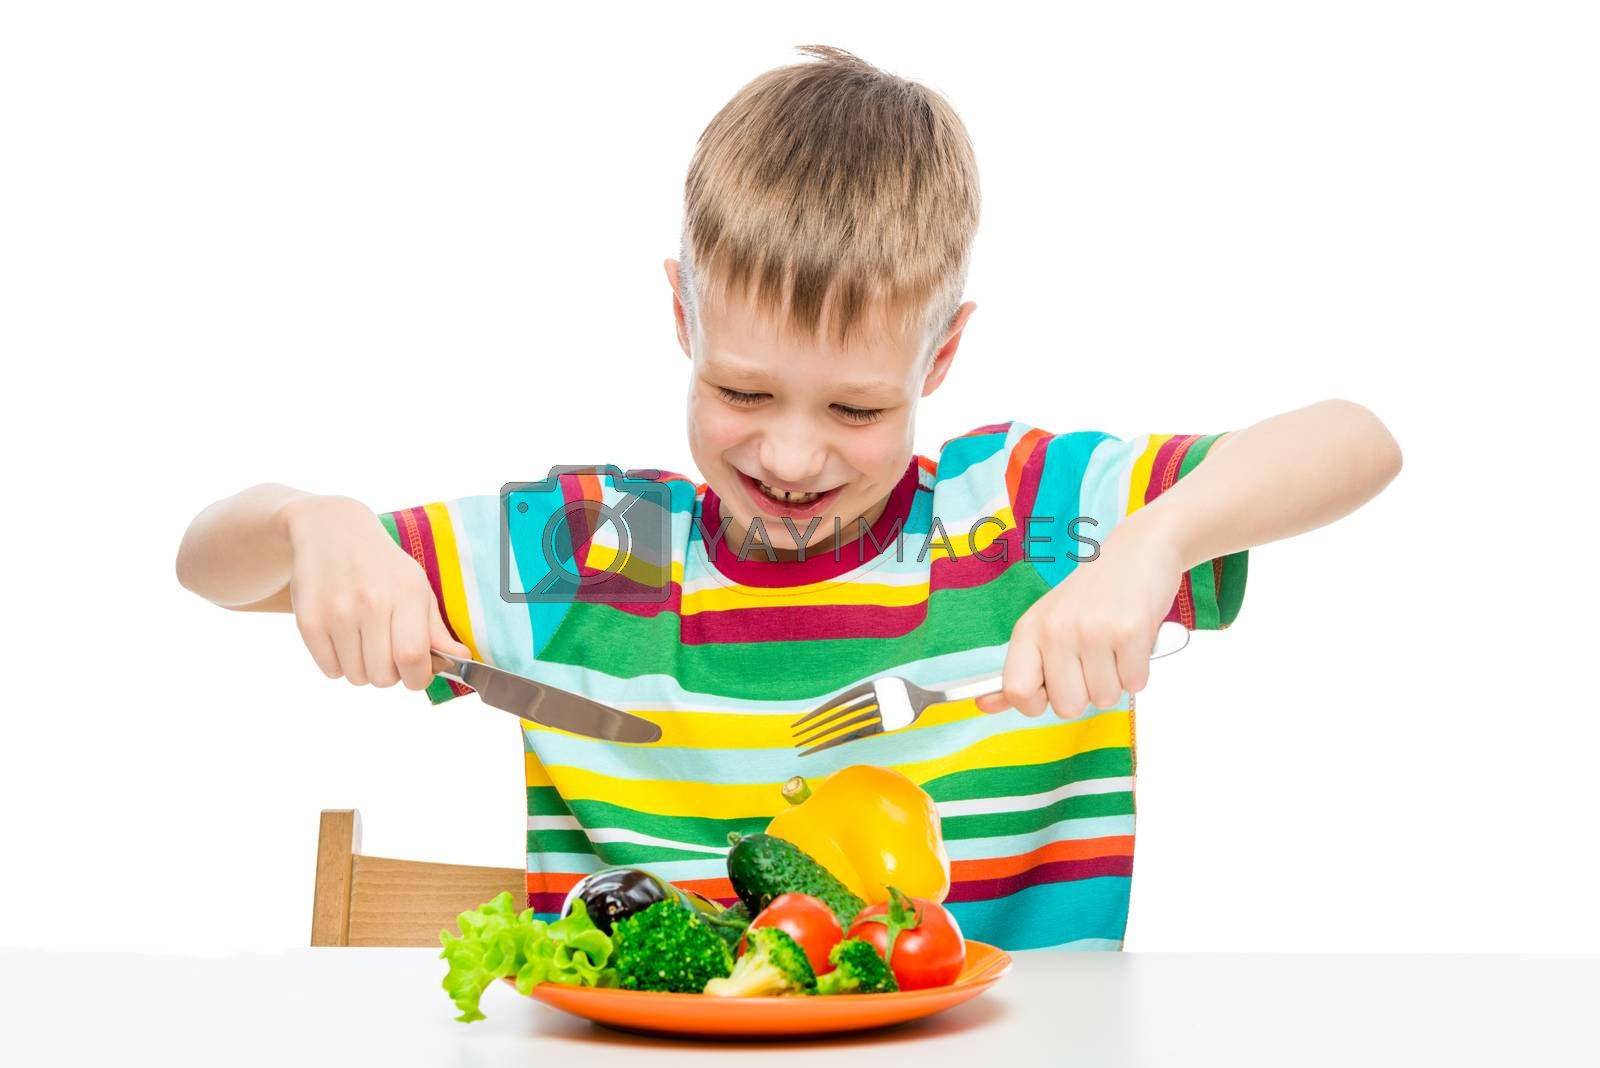 hungry boy 10 years old with a plate of vegetables, concept photo diet and healthy food